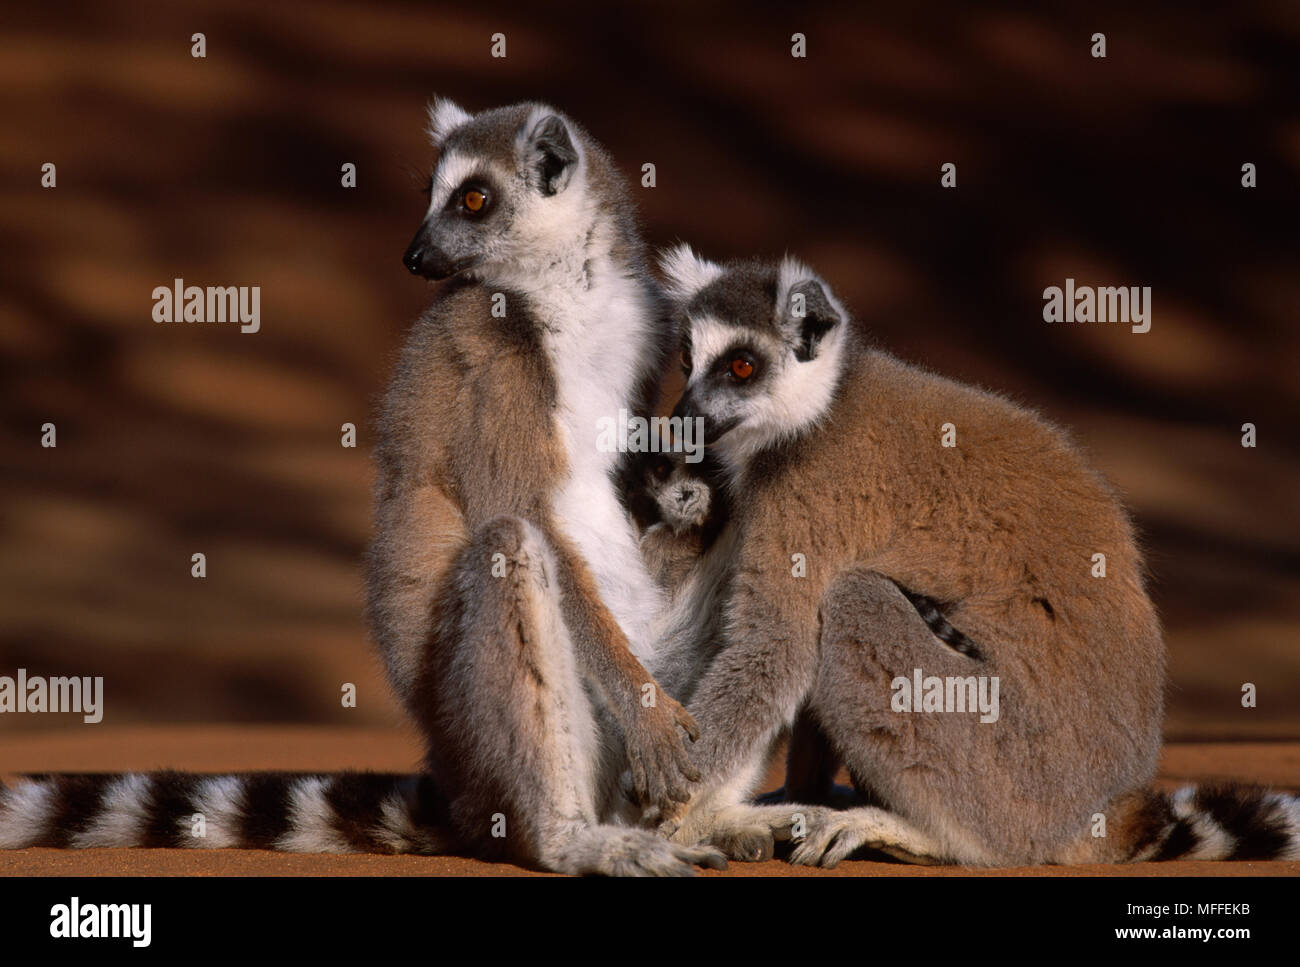 2368e0b859 RING-TAILED LEMURS Lemur catta two females with babies Madagascar.  Endangered species - Stock